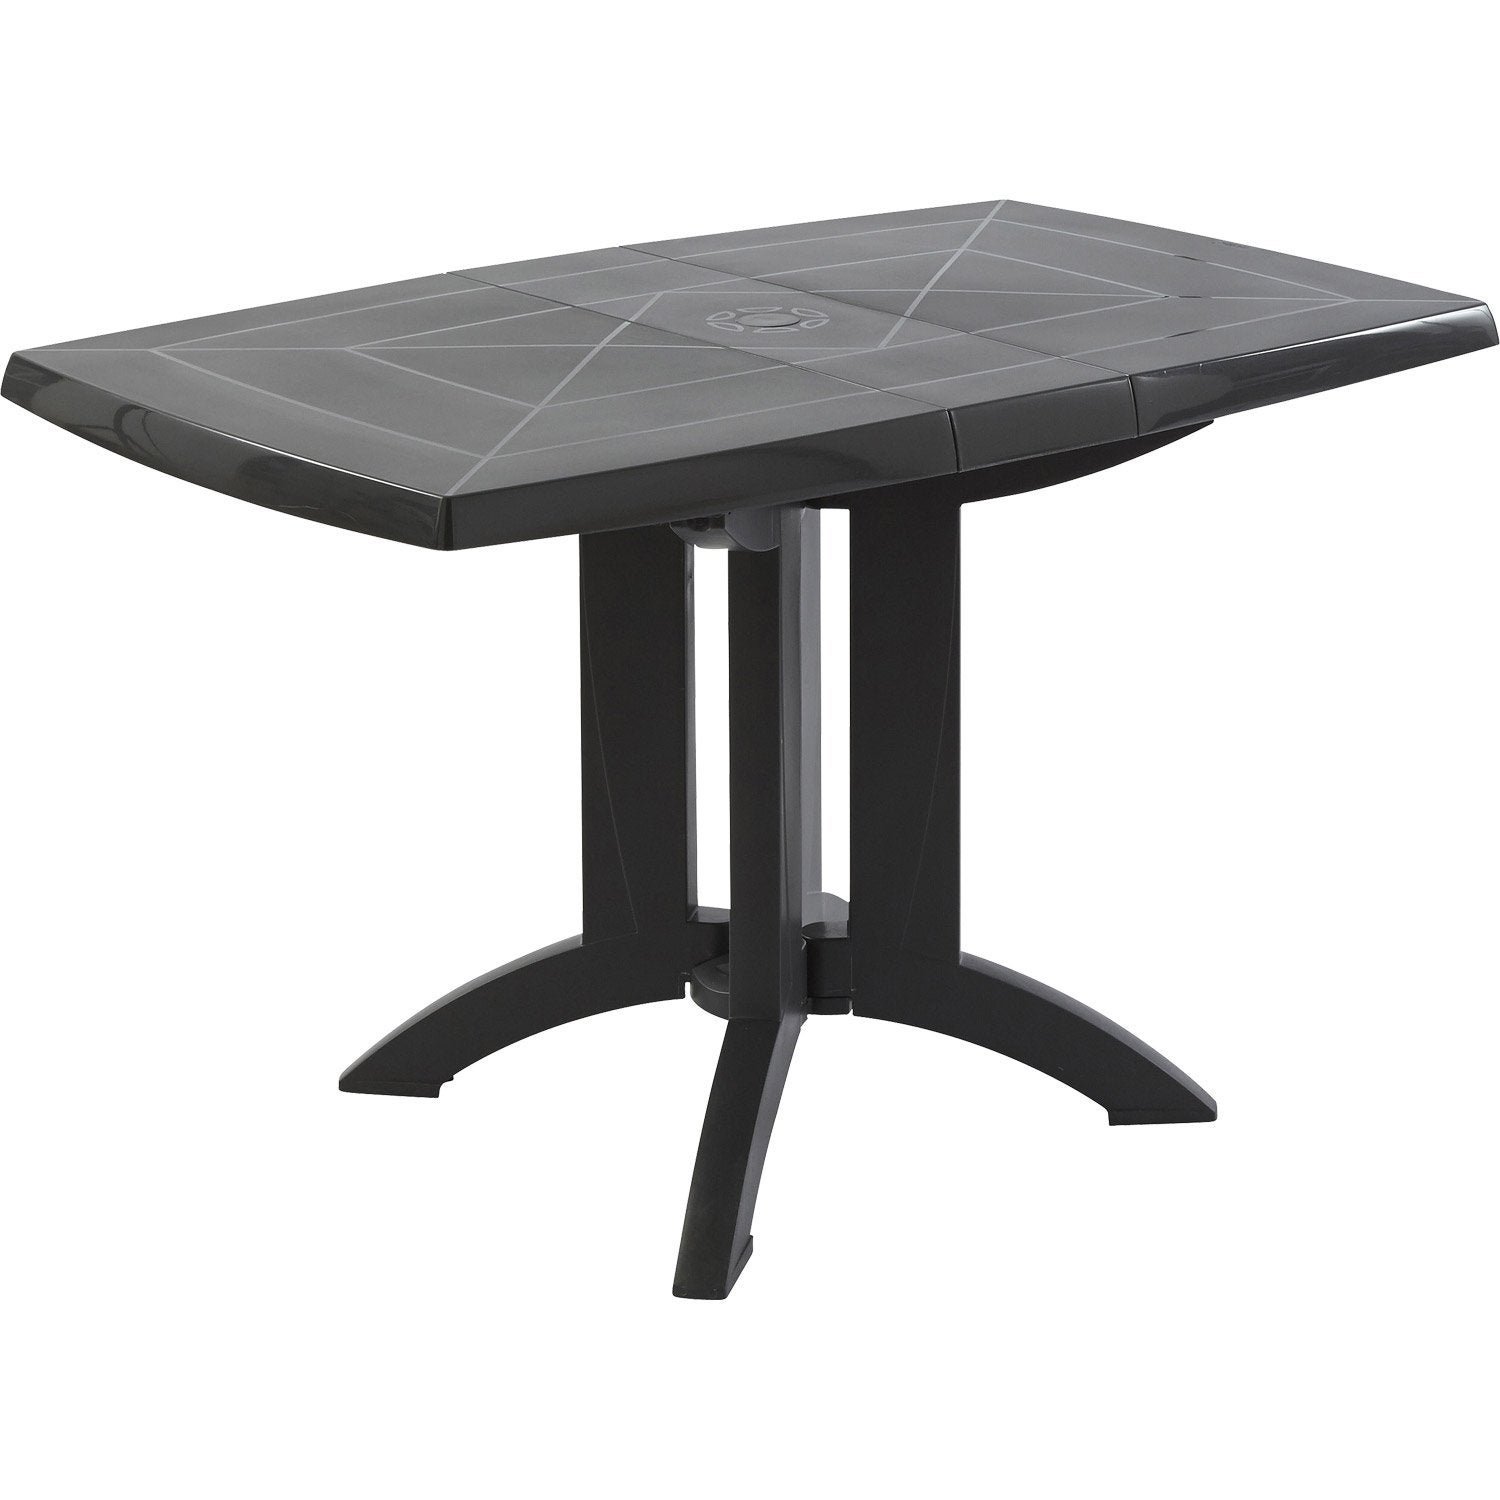 Table de jardin grosfillex v ga rectangulaire anthracite 4 - Leroy merlin table pliante ...